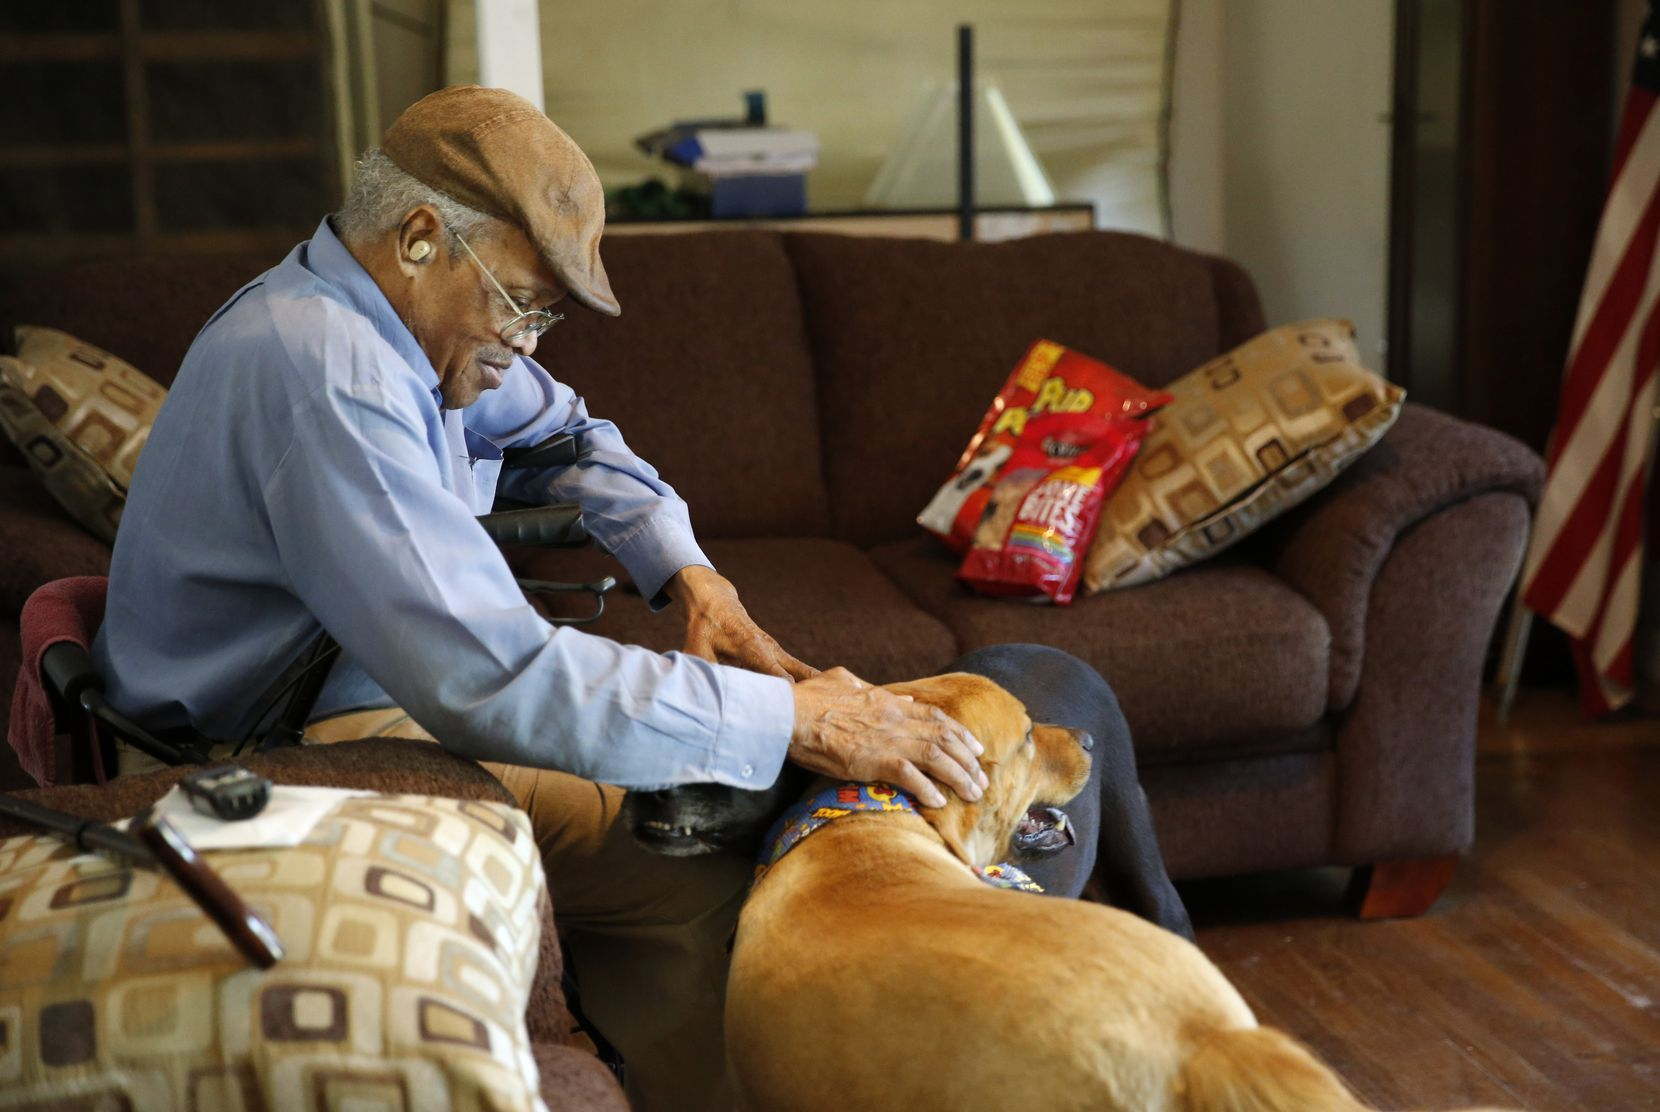 James Evans, 83 pets his dogs Rex (left) and Renny (right) at his home in Dallas, on Saturday, July 13, 2019.